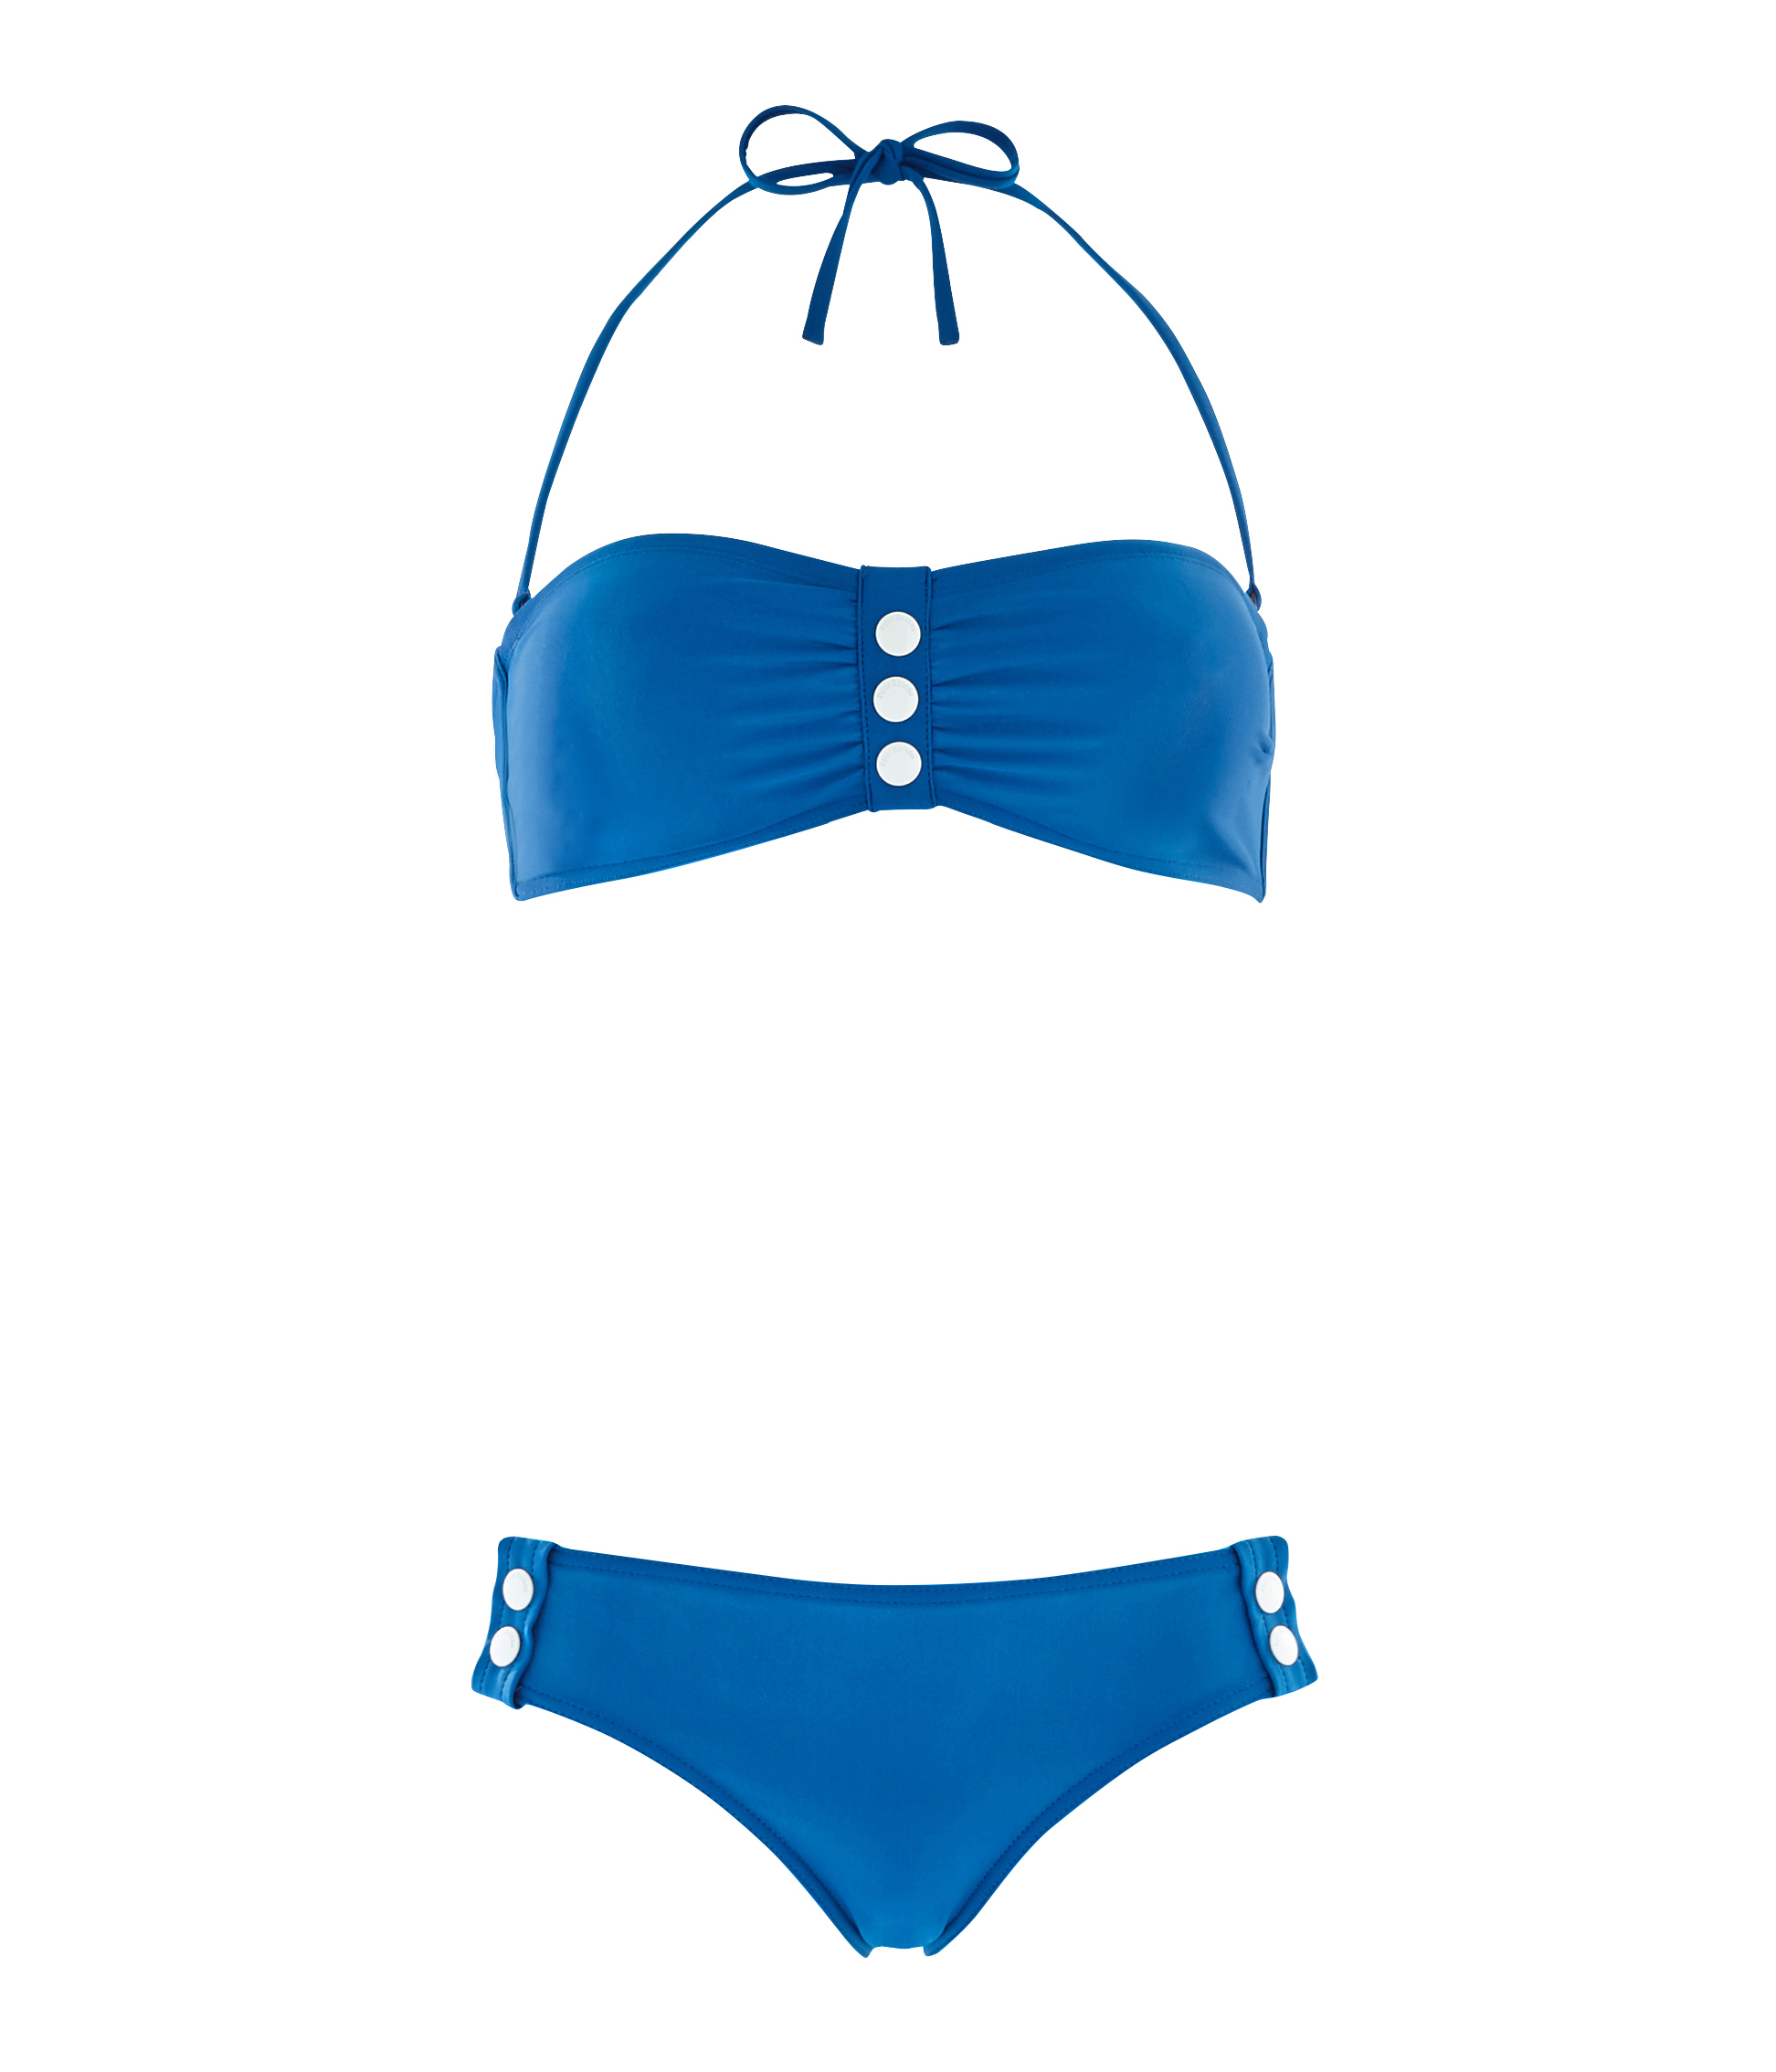 Women's 2-piece swimsuit